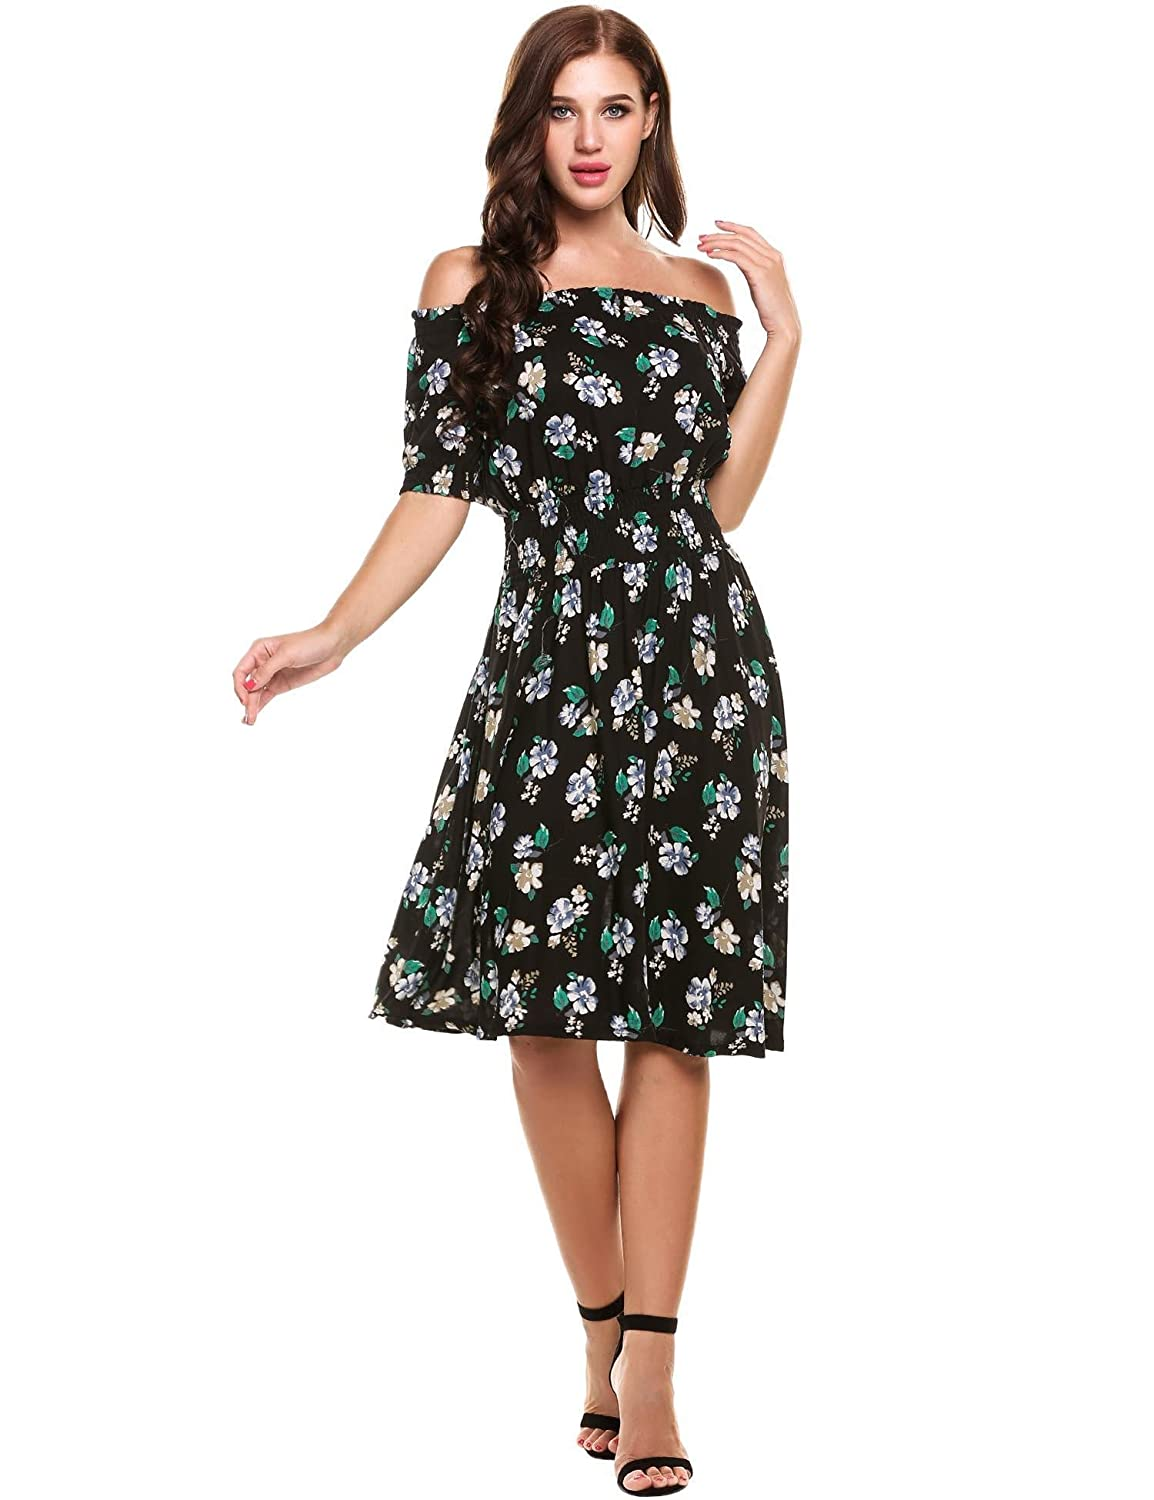 ELESOL Womens Flower Print Dress Off Shoulder Ruffle A line Beach Dress ELH007928